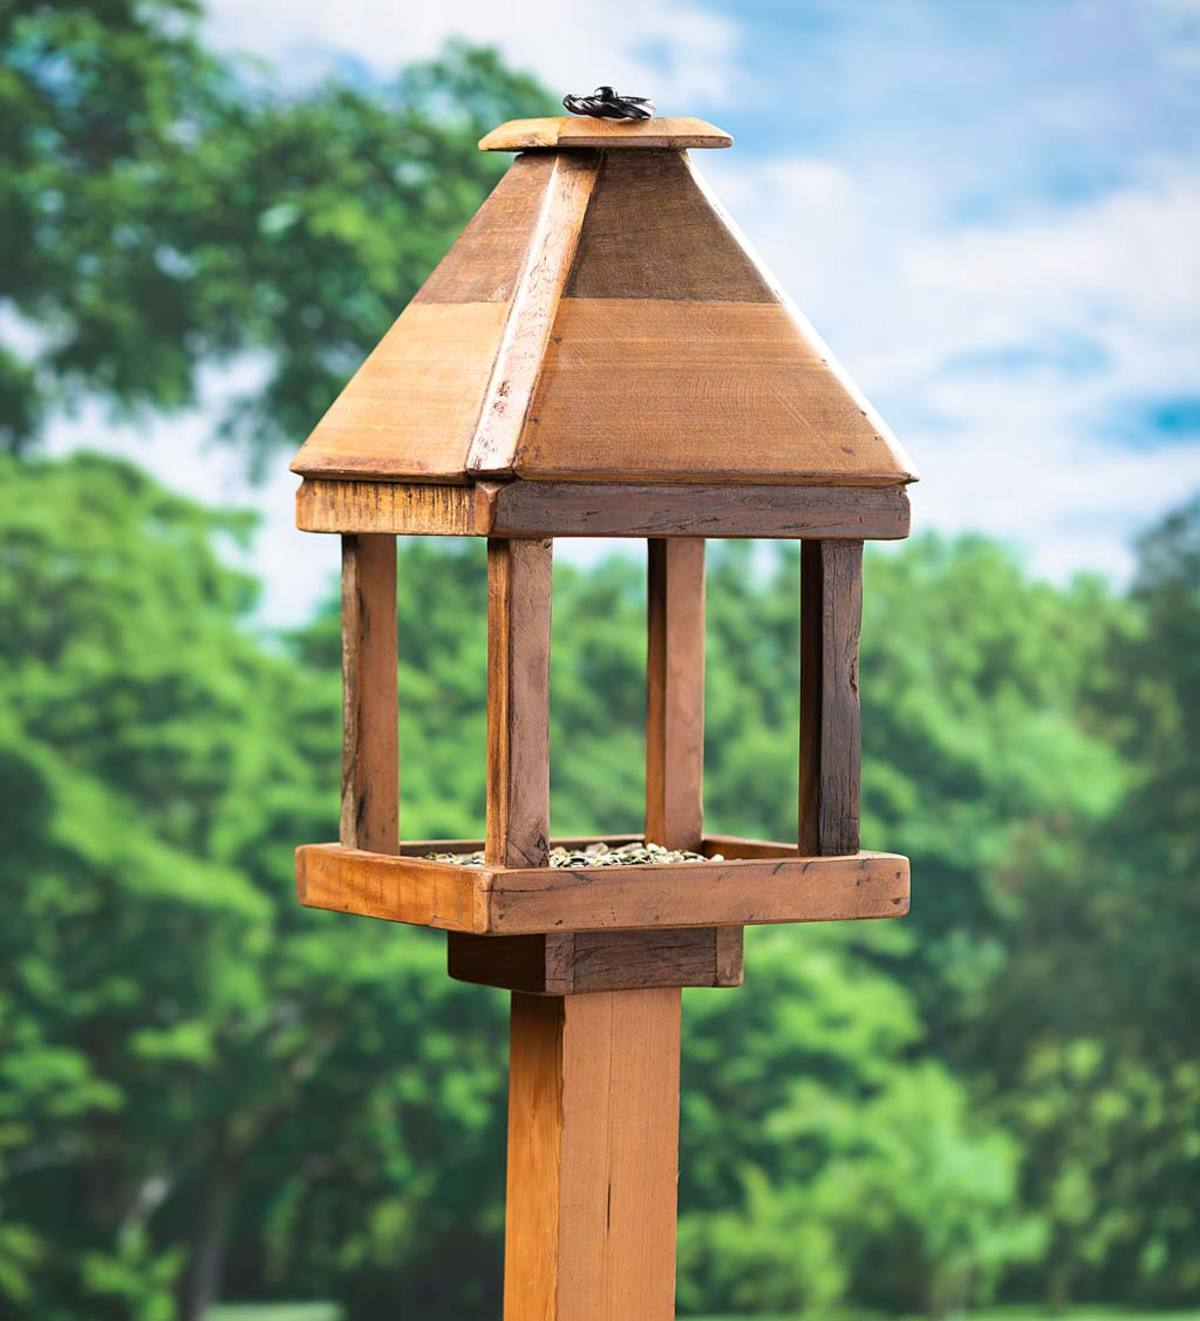 Reclaimed Wood Open Platform Bird Feeder with Roof